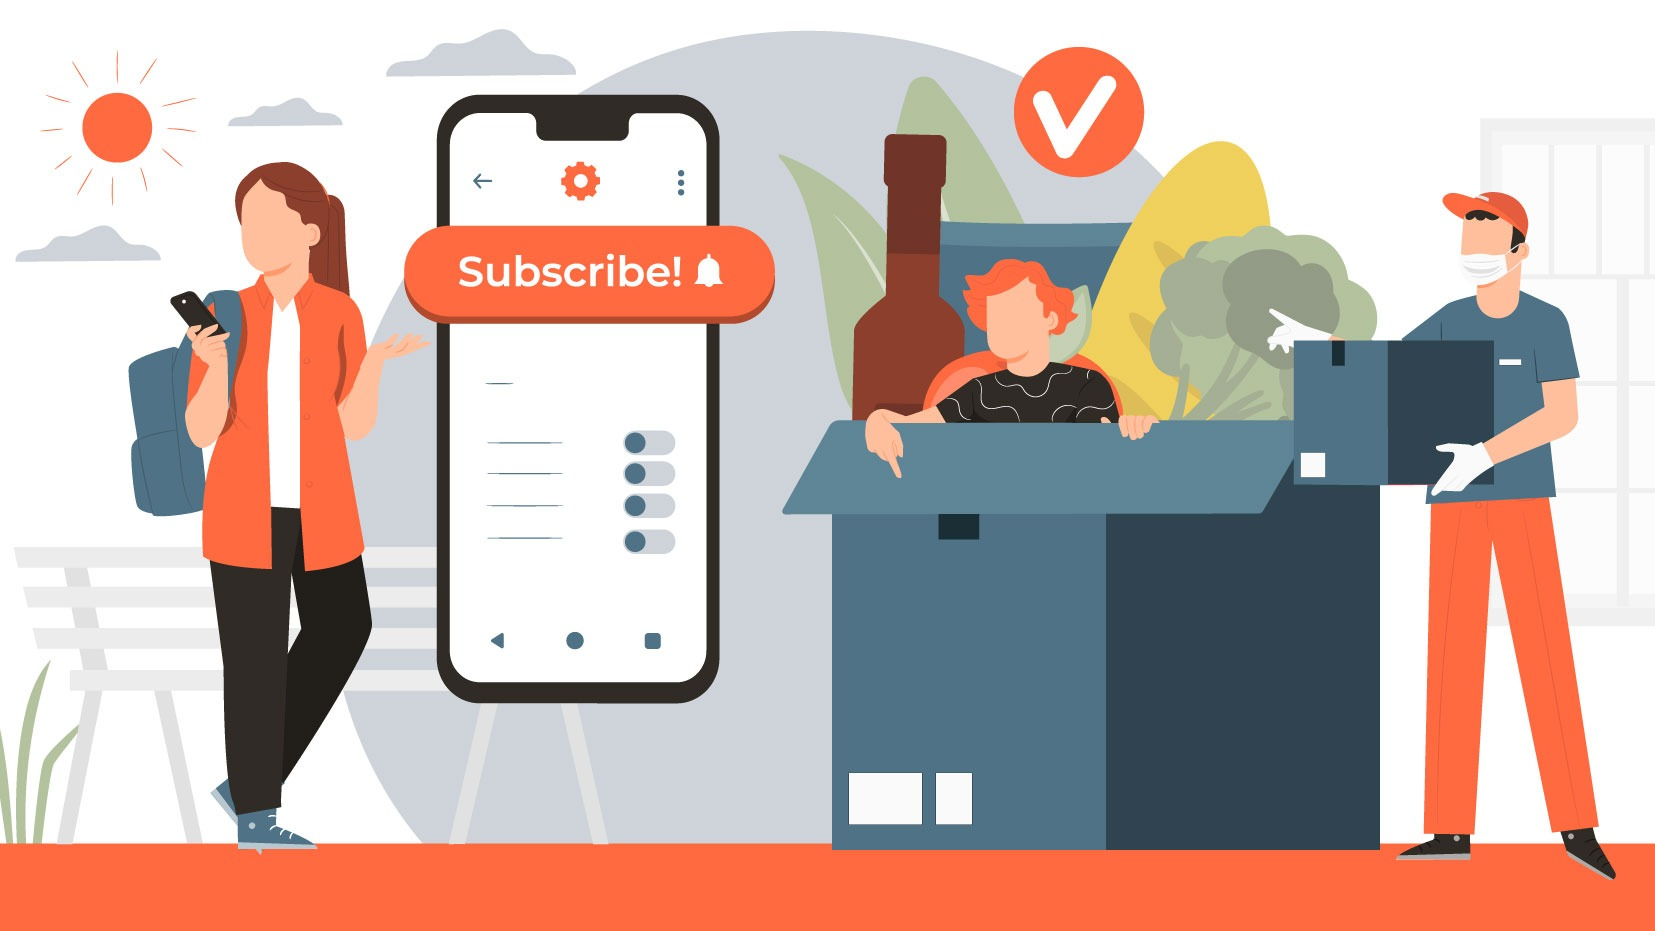 The Subscription Leak: Most Shoppers Cancel Their Subscriptions Within a Year